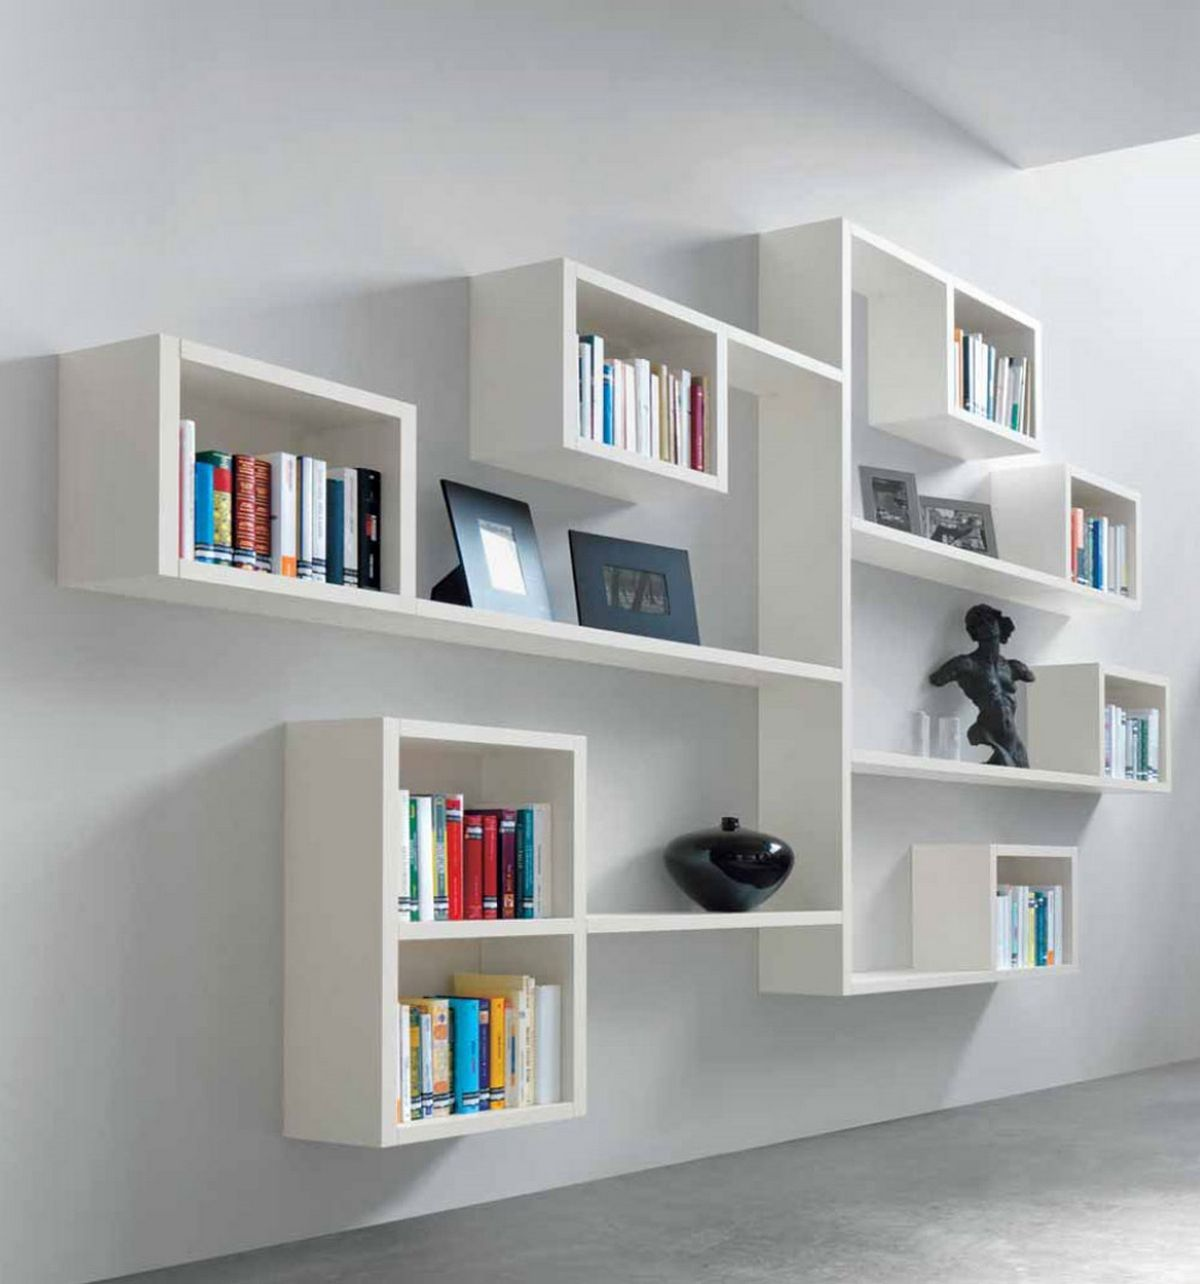 Modular Wall Shelving 26 Of The Most Creative Bookshelves Designs  Minimalist Book